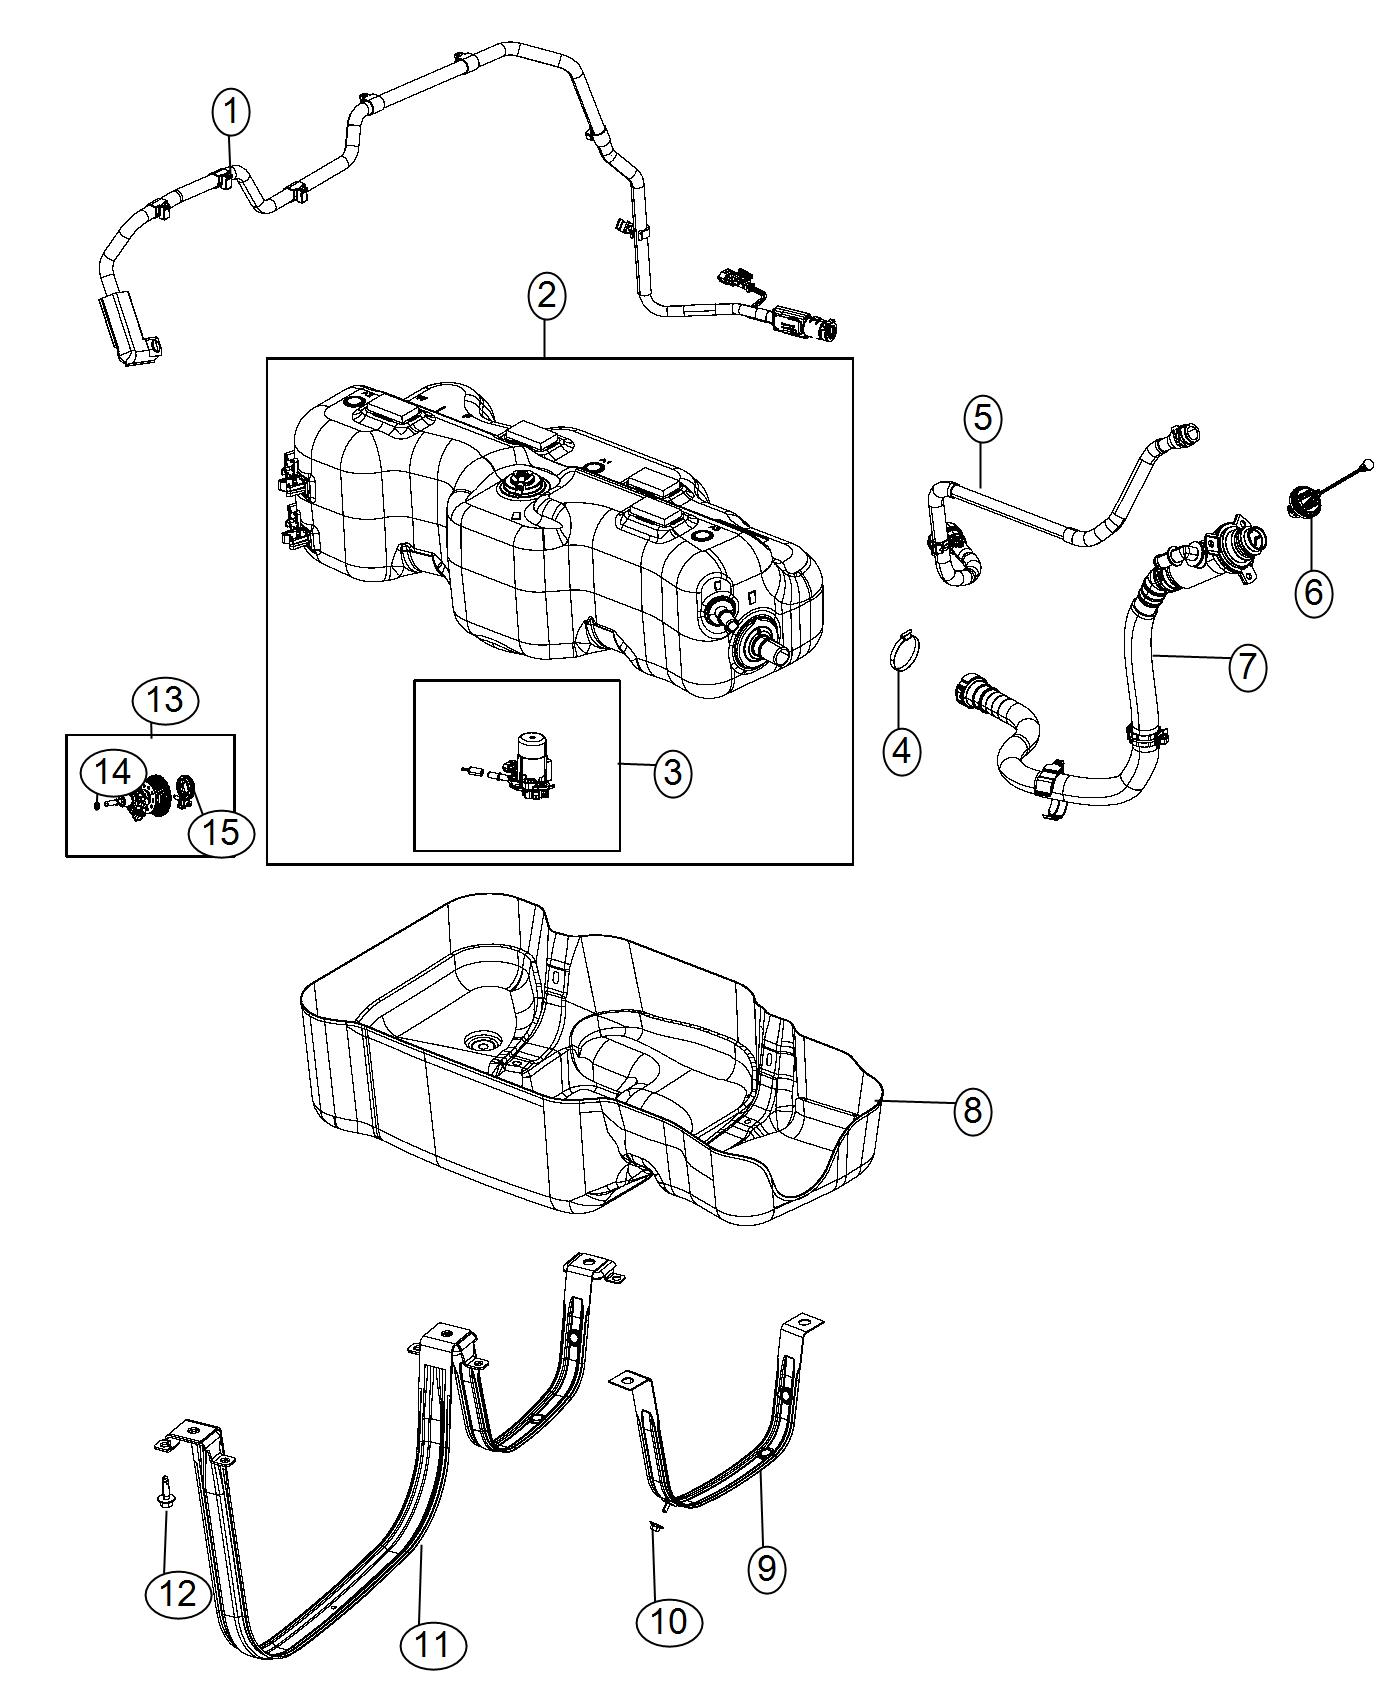 Ram Injector Injector Kit Modulesel Exhaust